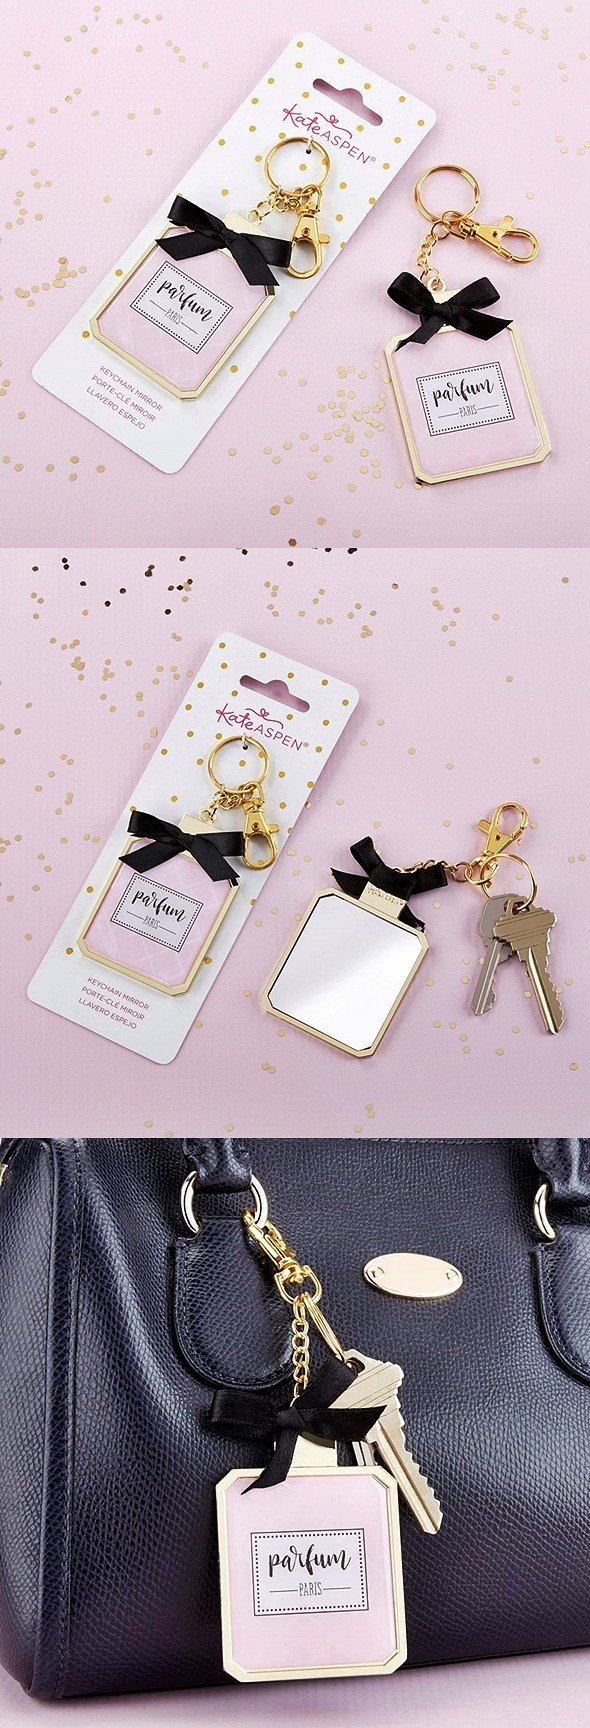 Kate Aspen French Perfume Bottle Design Keychain with Compact Mirror